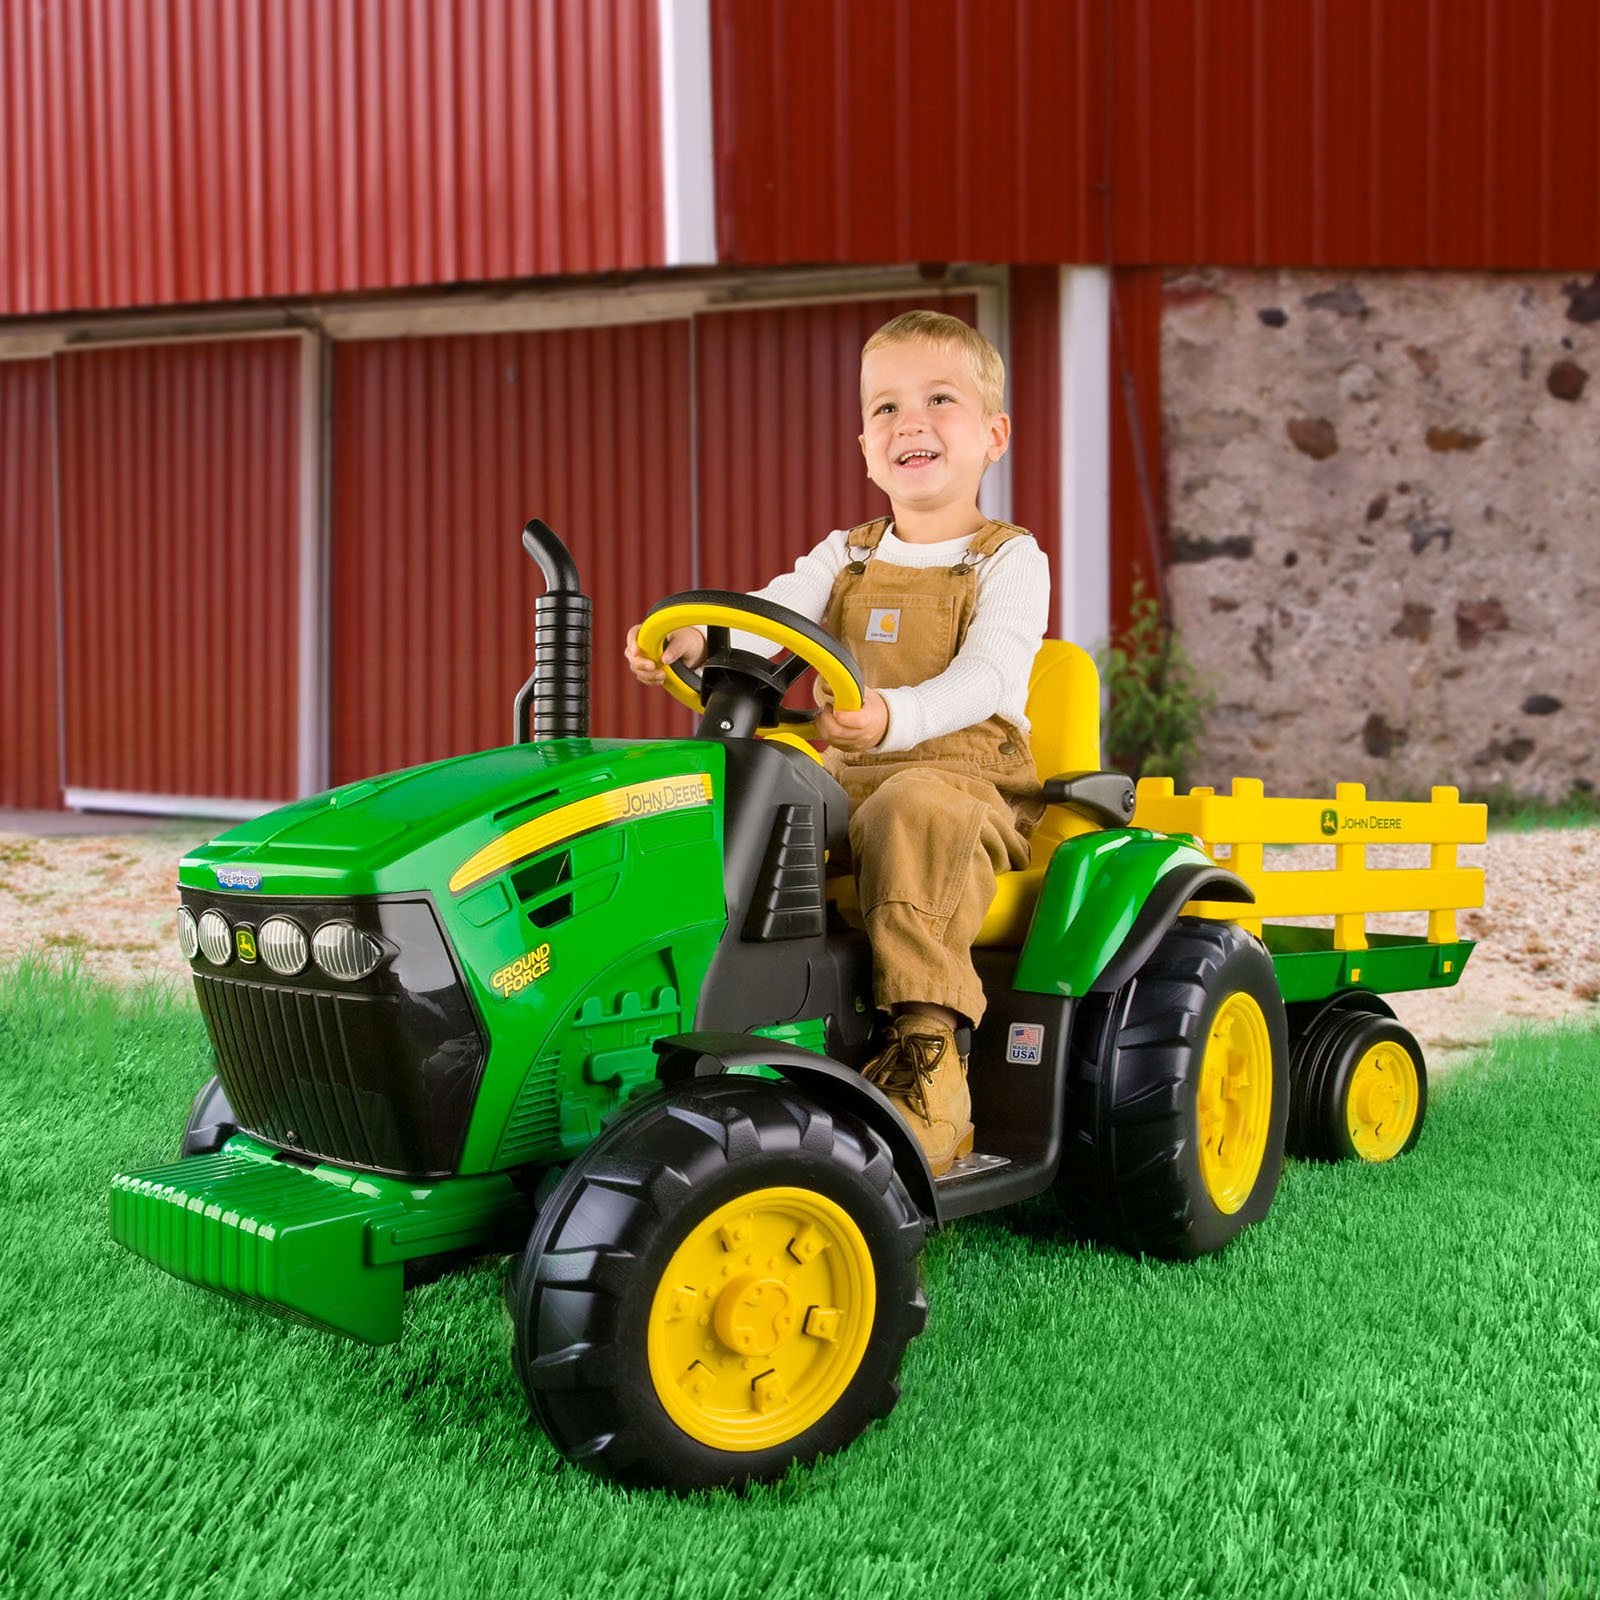 peg perego john deere ground tractor trailer battery powered riding toy